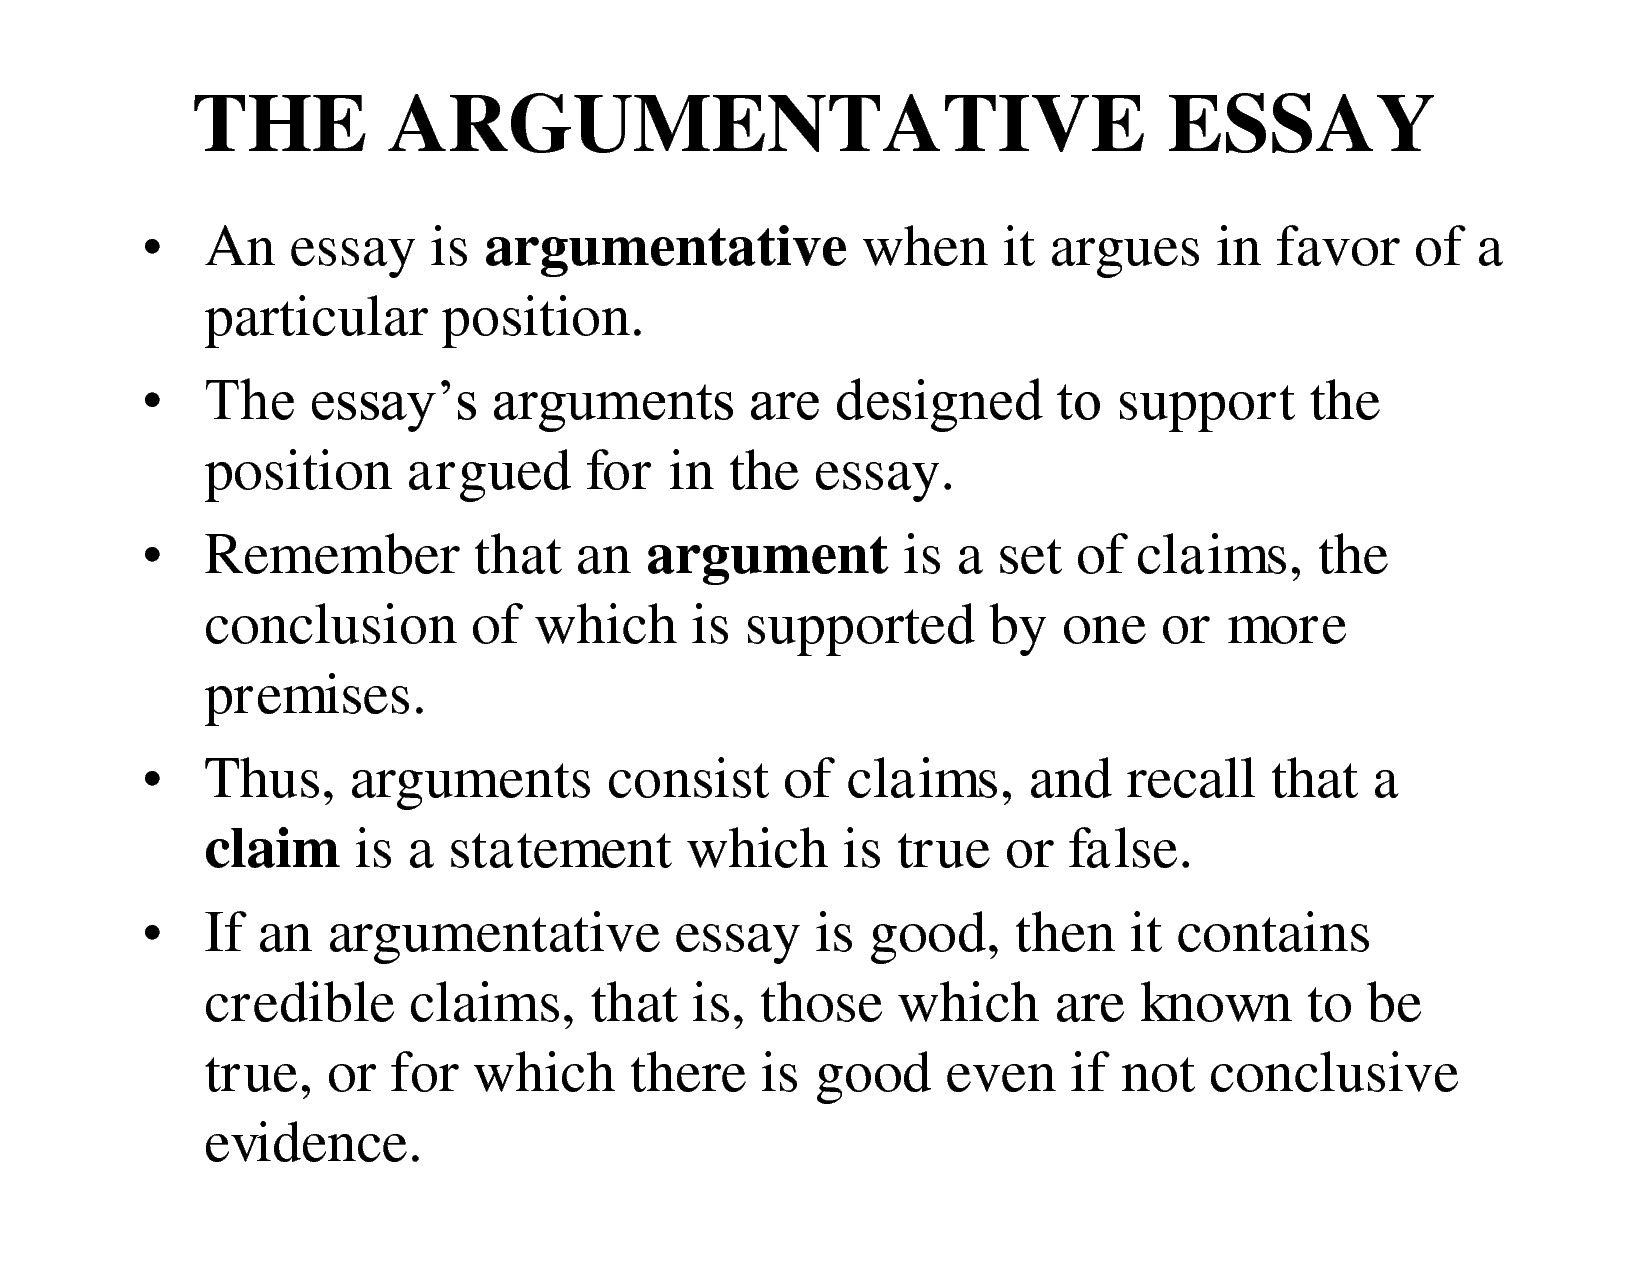 004 Conclusion Of An Essay Example How To Write Conclusions Another Word For Throughout Surprising About Racism Argumentative Outline Yourself Full